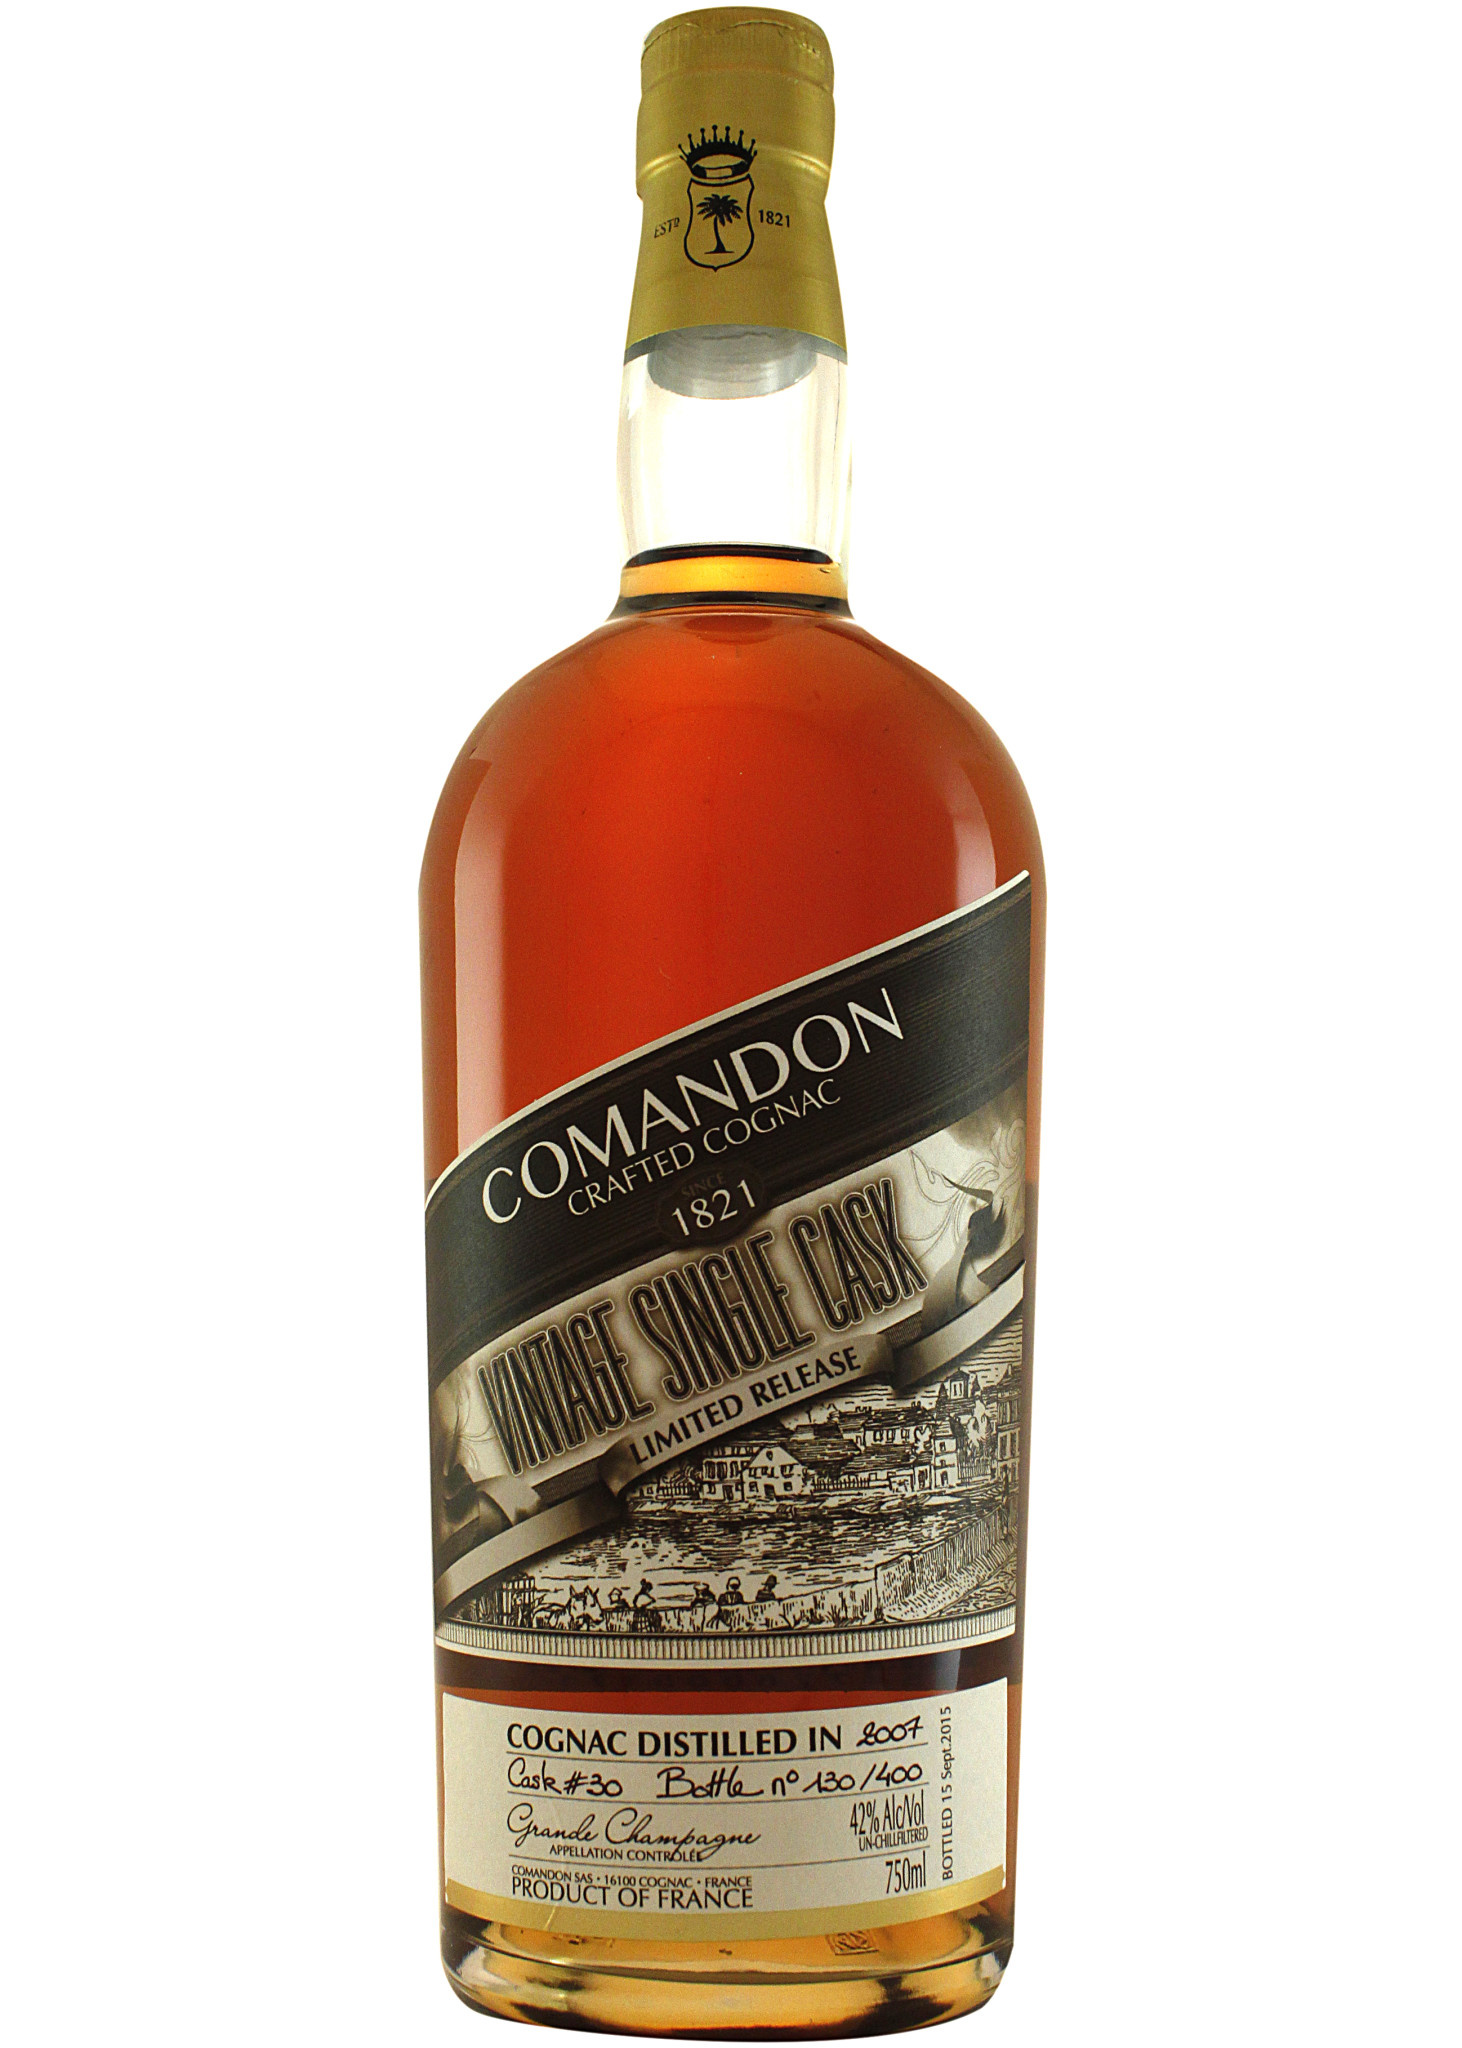 Comandon 2007 Vintage Single Cask Cognac Grand Champagne